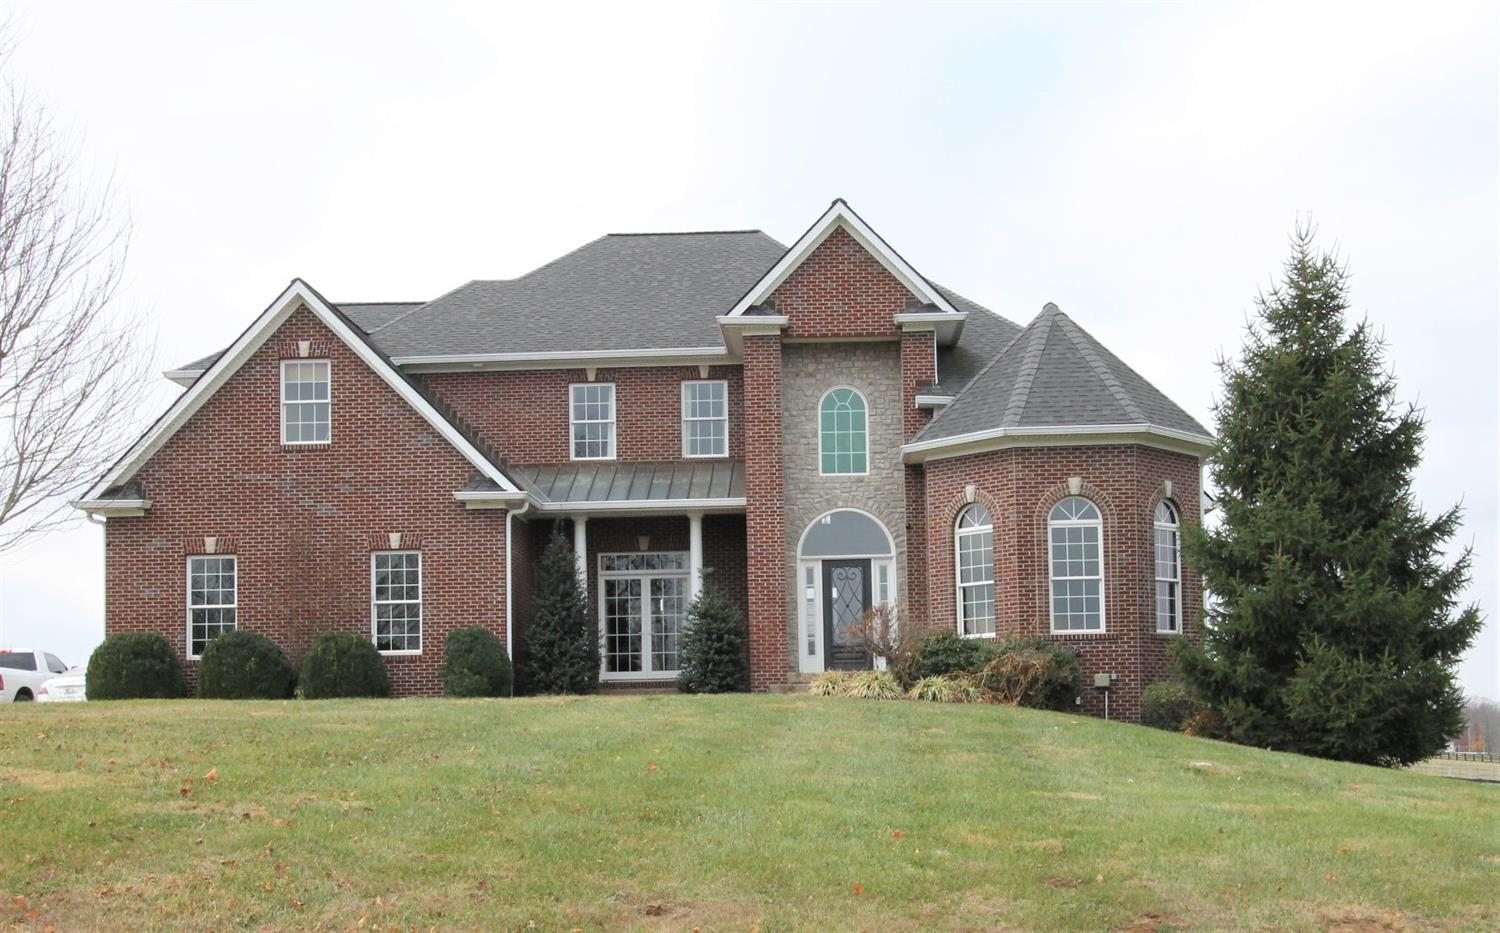 107 Pelican Way, Midway, KY 40347